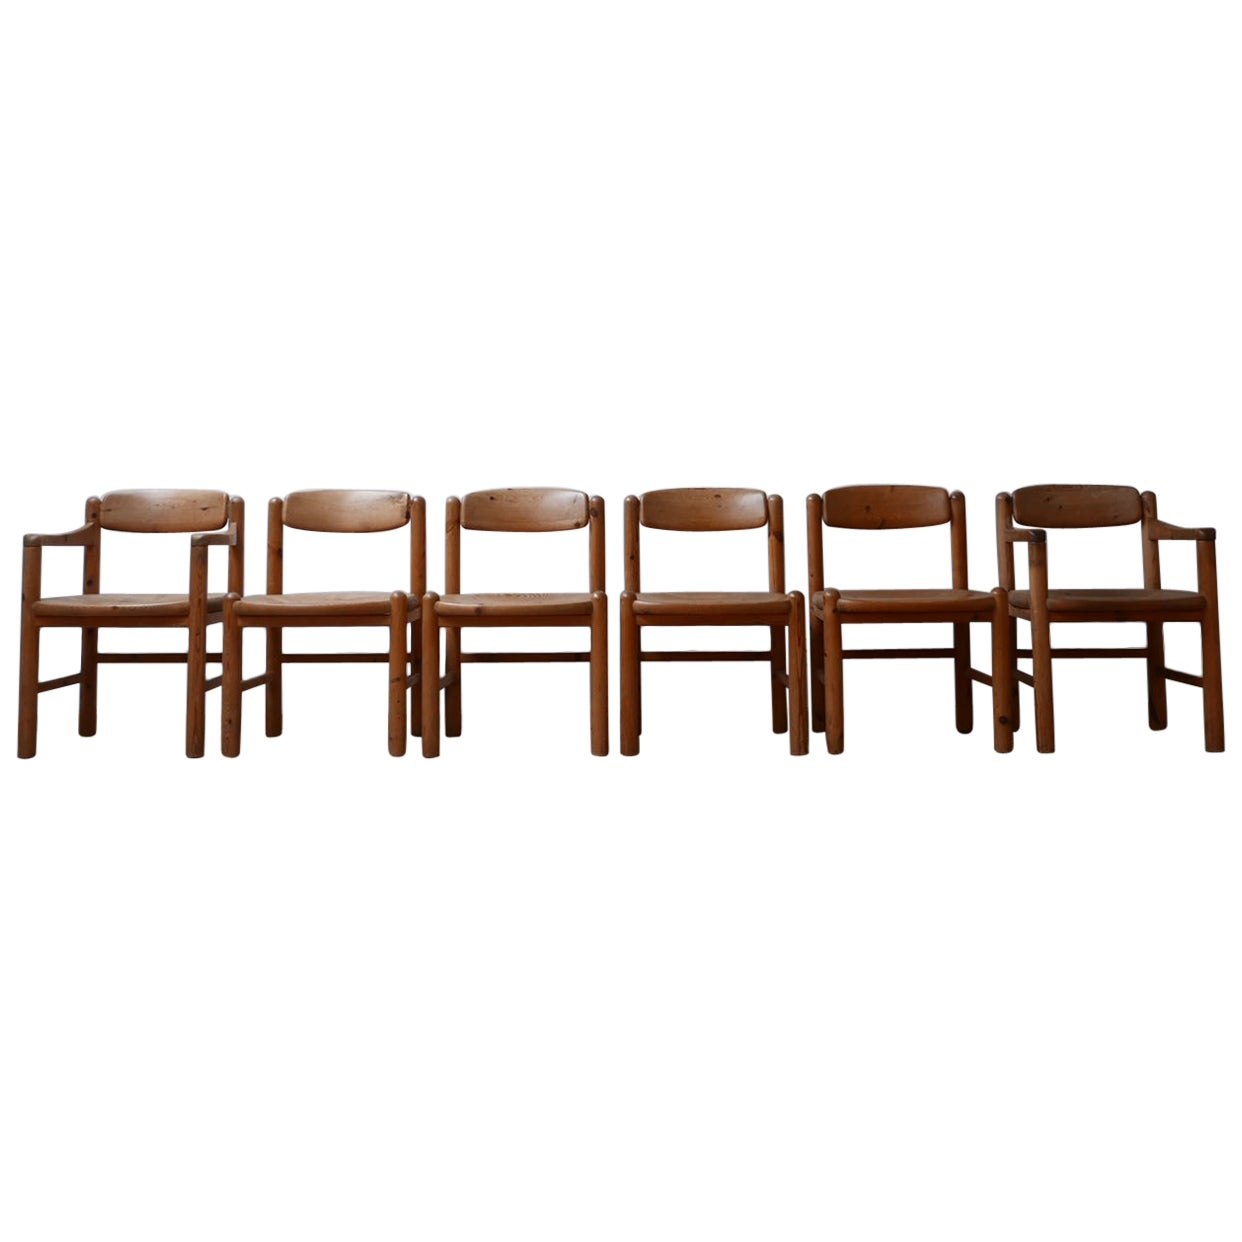 Set of Six Midcentury Dining Chairs by Rainer Daumiller